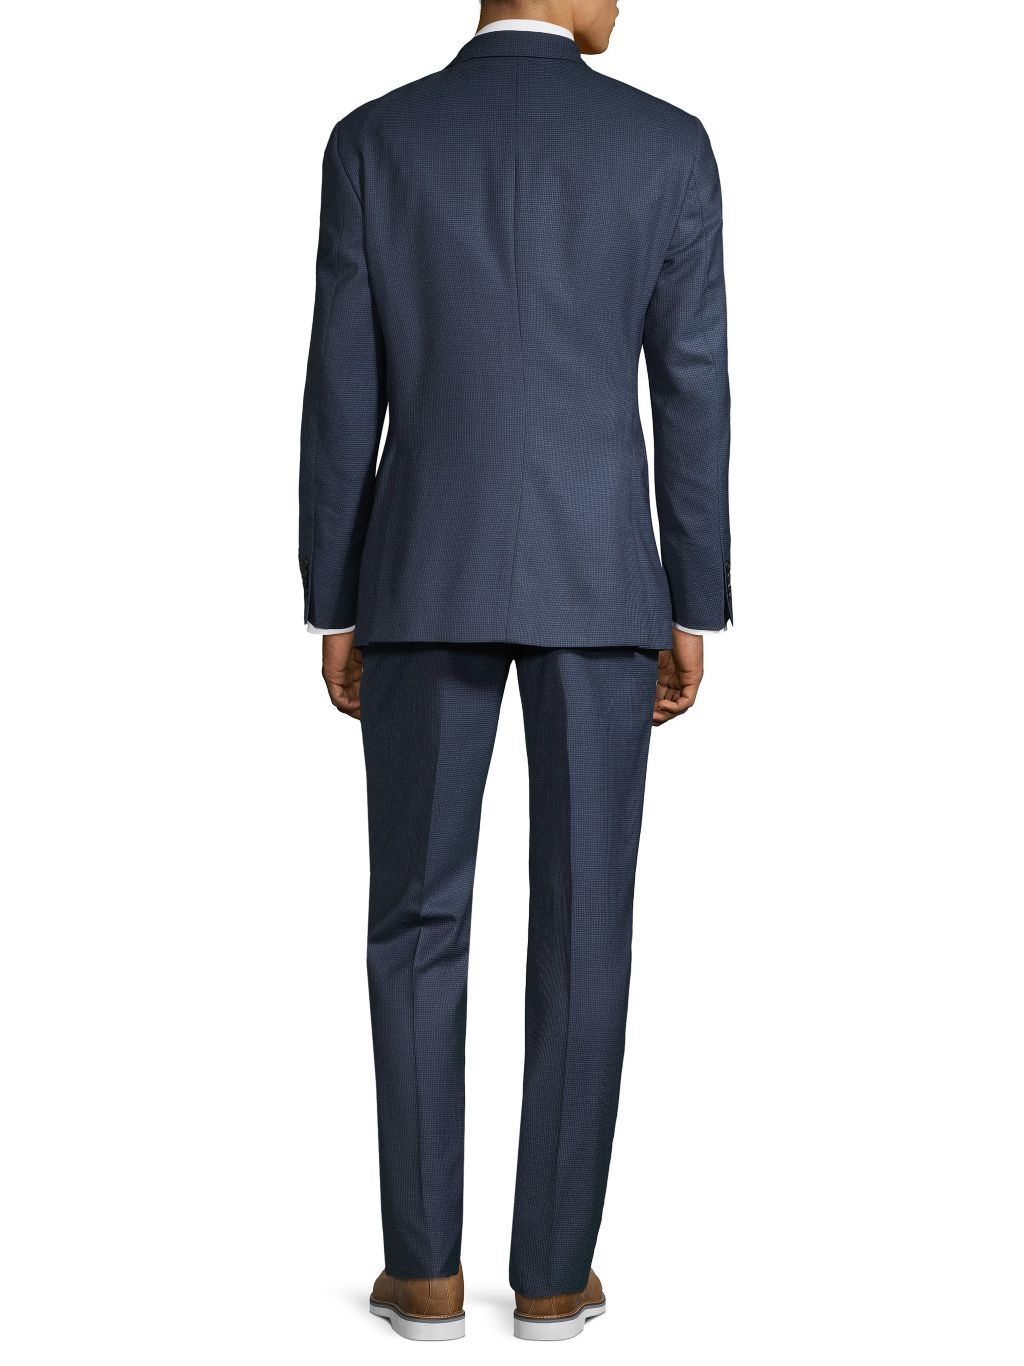 Saks Fifth Avenue Made in Italy Slim-Fit Checked Wool Suit